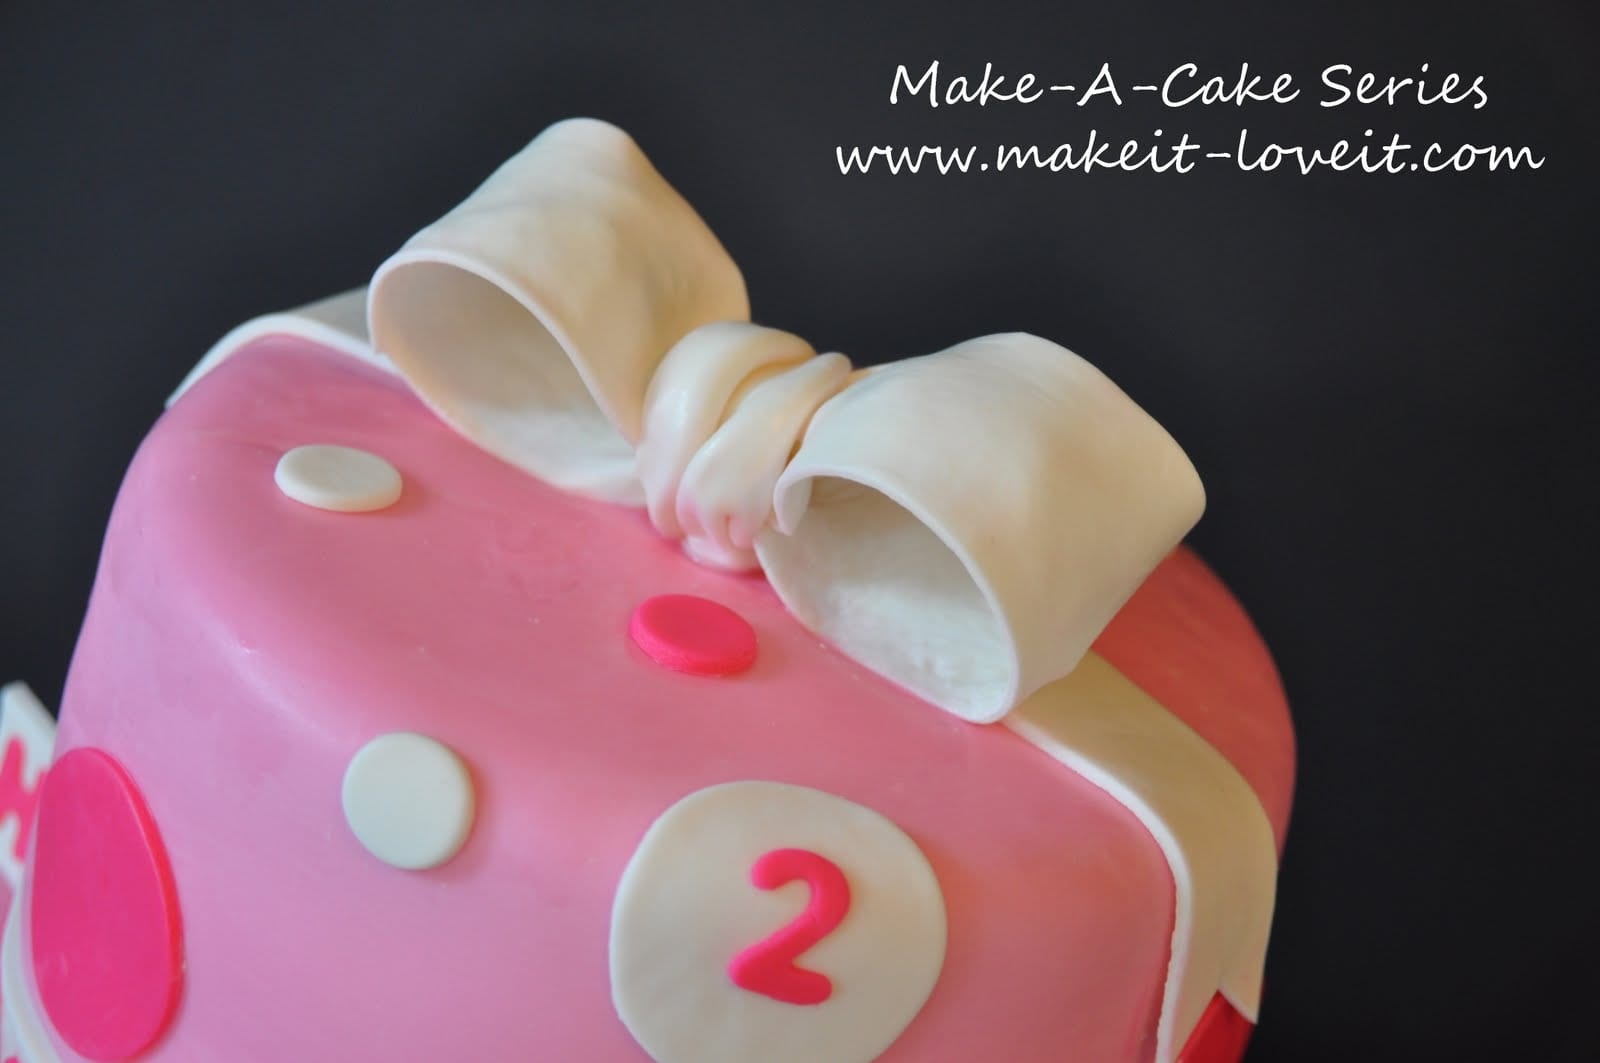 Make-a-Cake Series: Gumpaste Bow, Part II